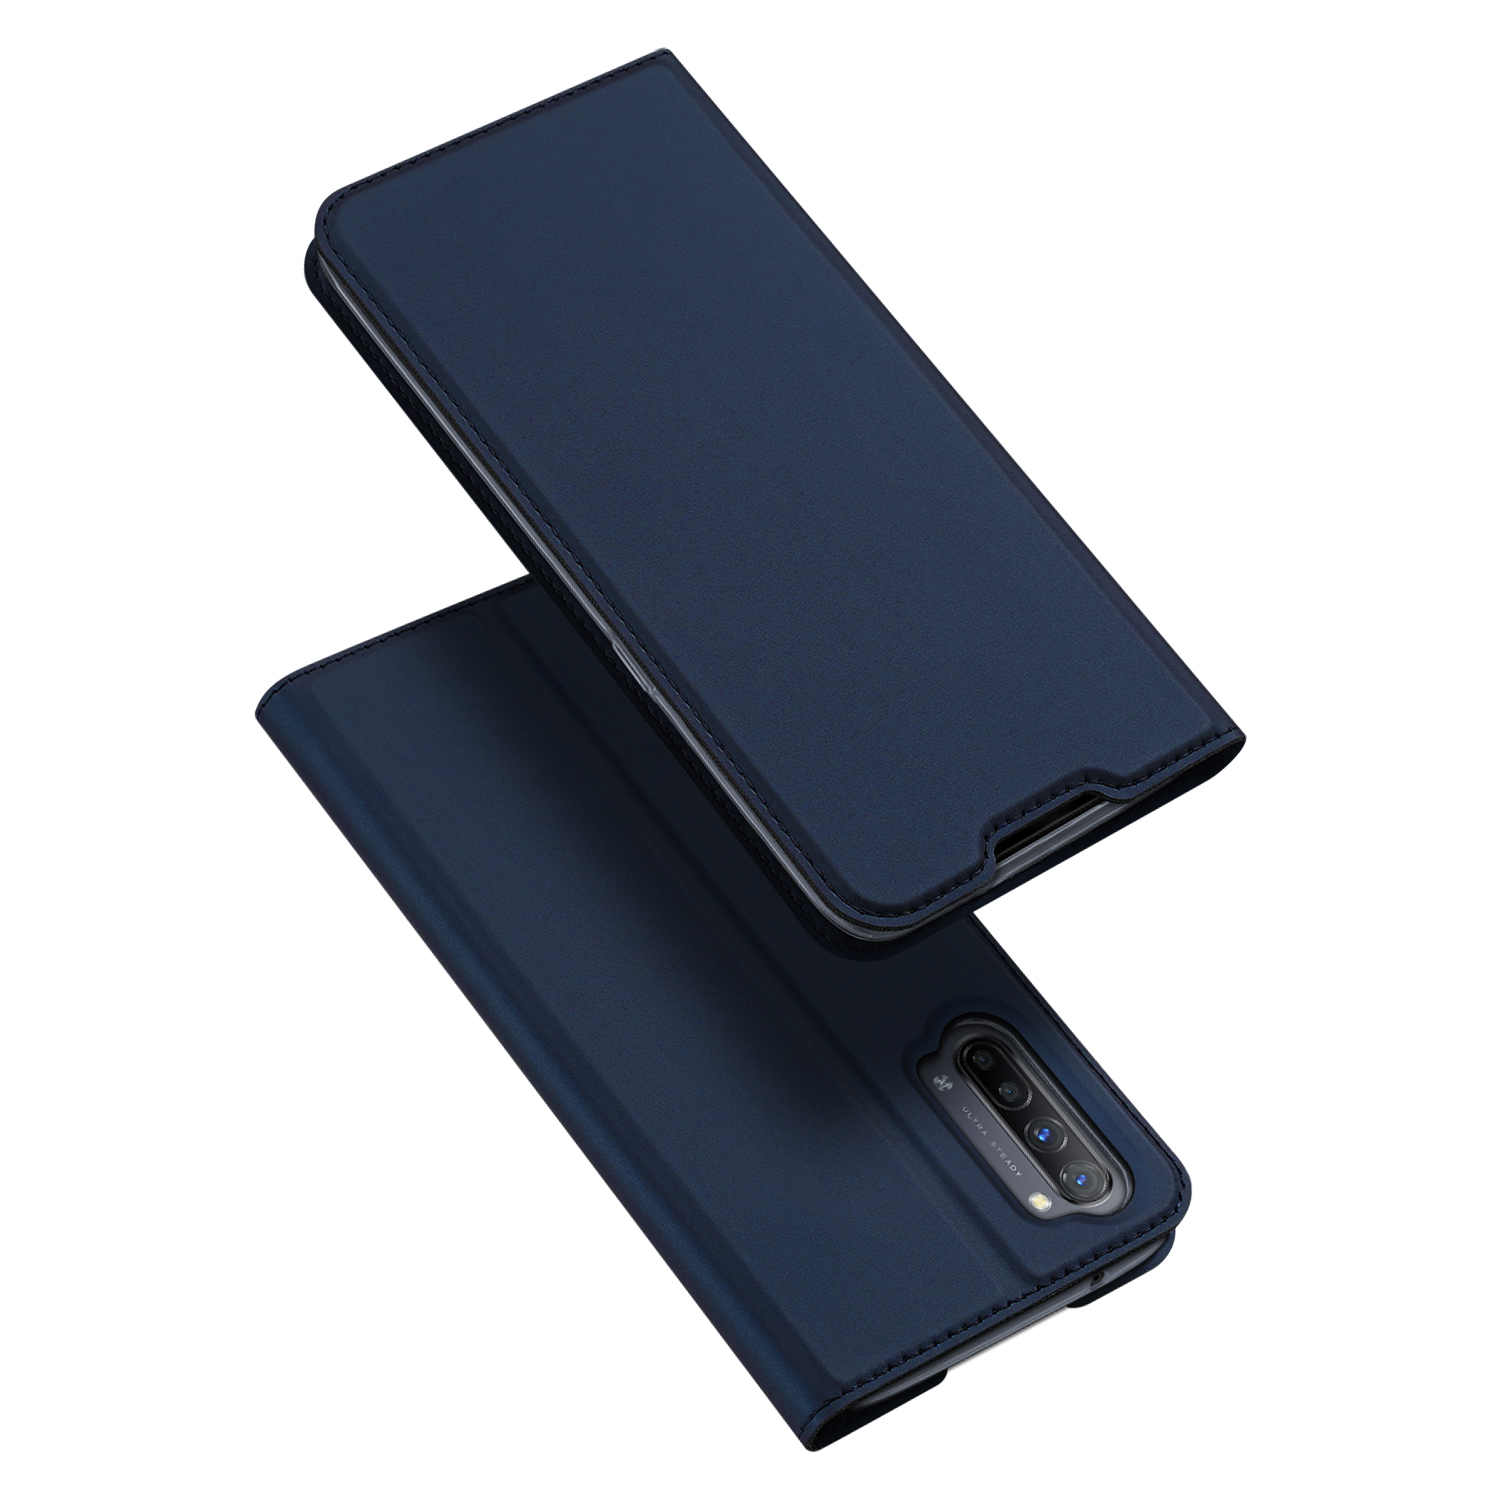 For OPPO Reno 3/3 Pro/ 3 pro 4G Case Magnetic Closure Card Slots Cellphone Cover Screen Protector Stand Available Leather Shell blue